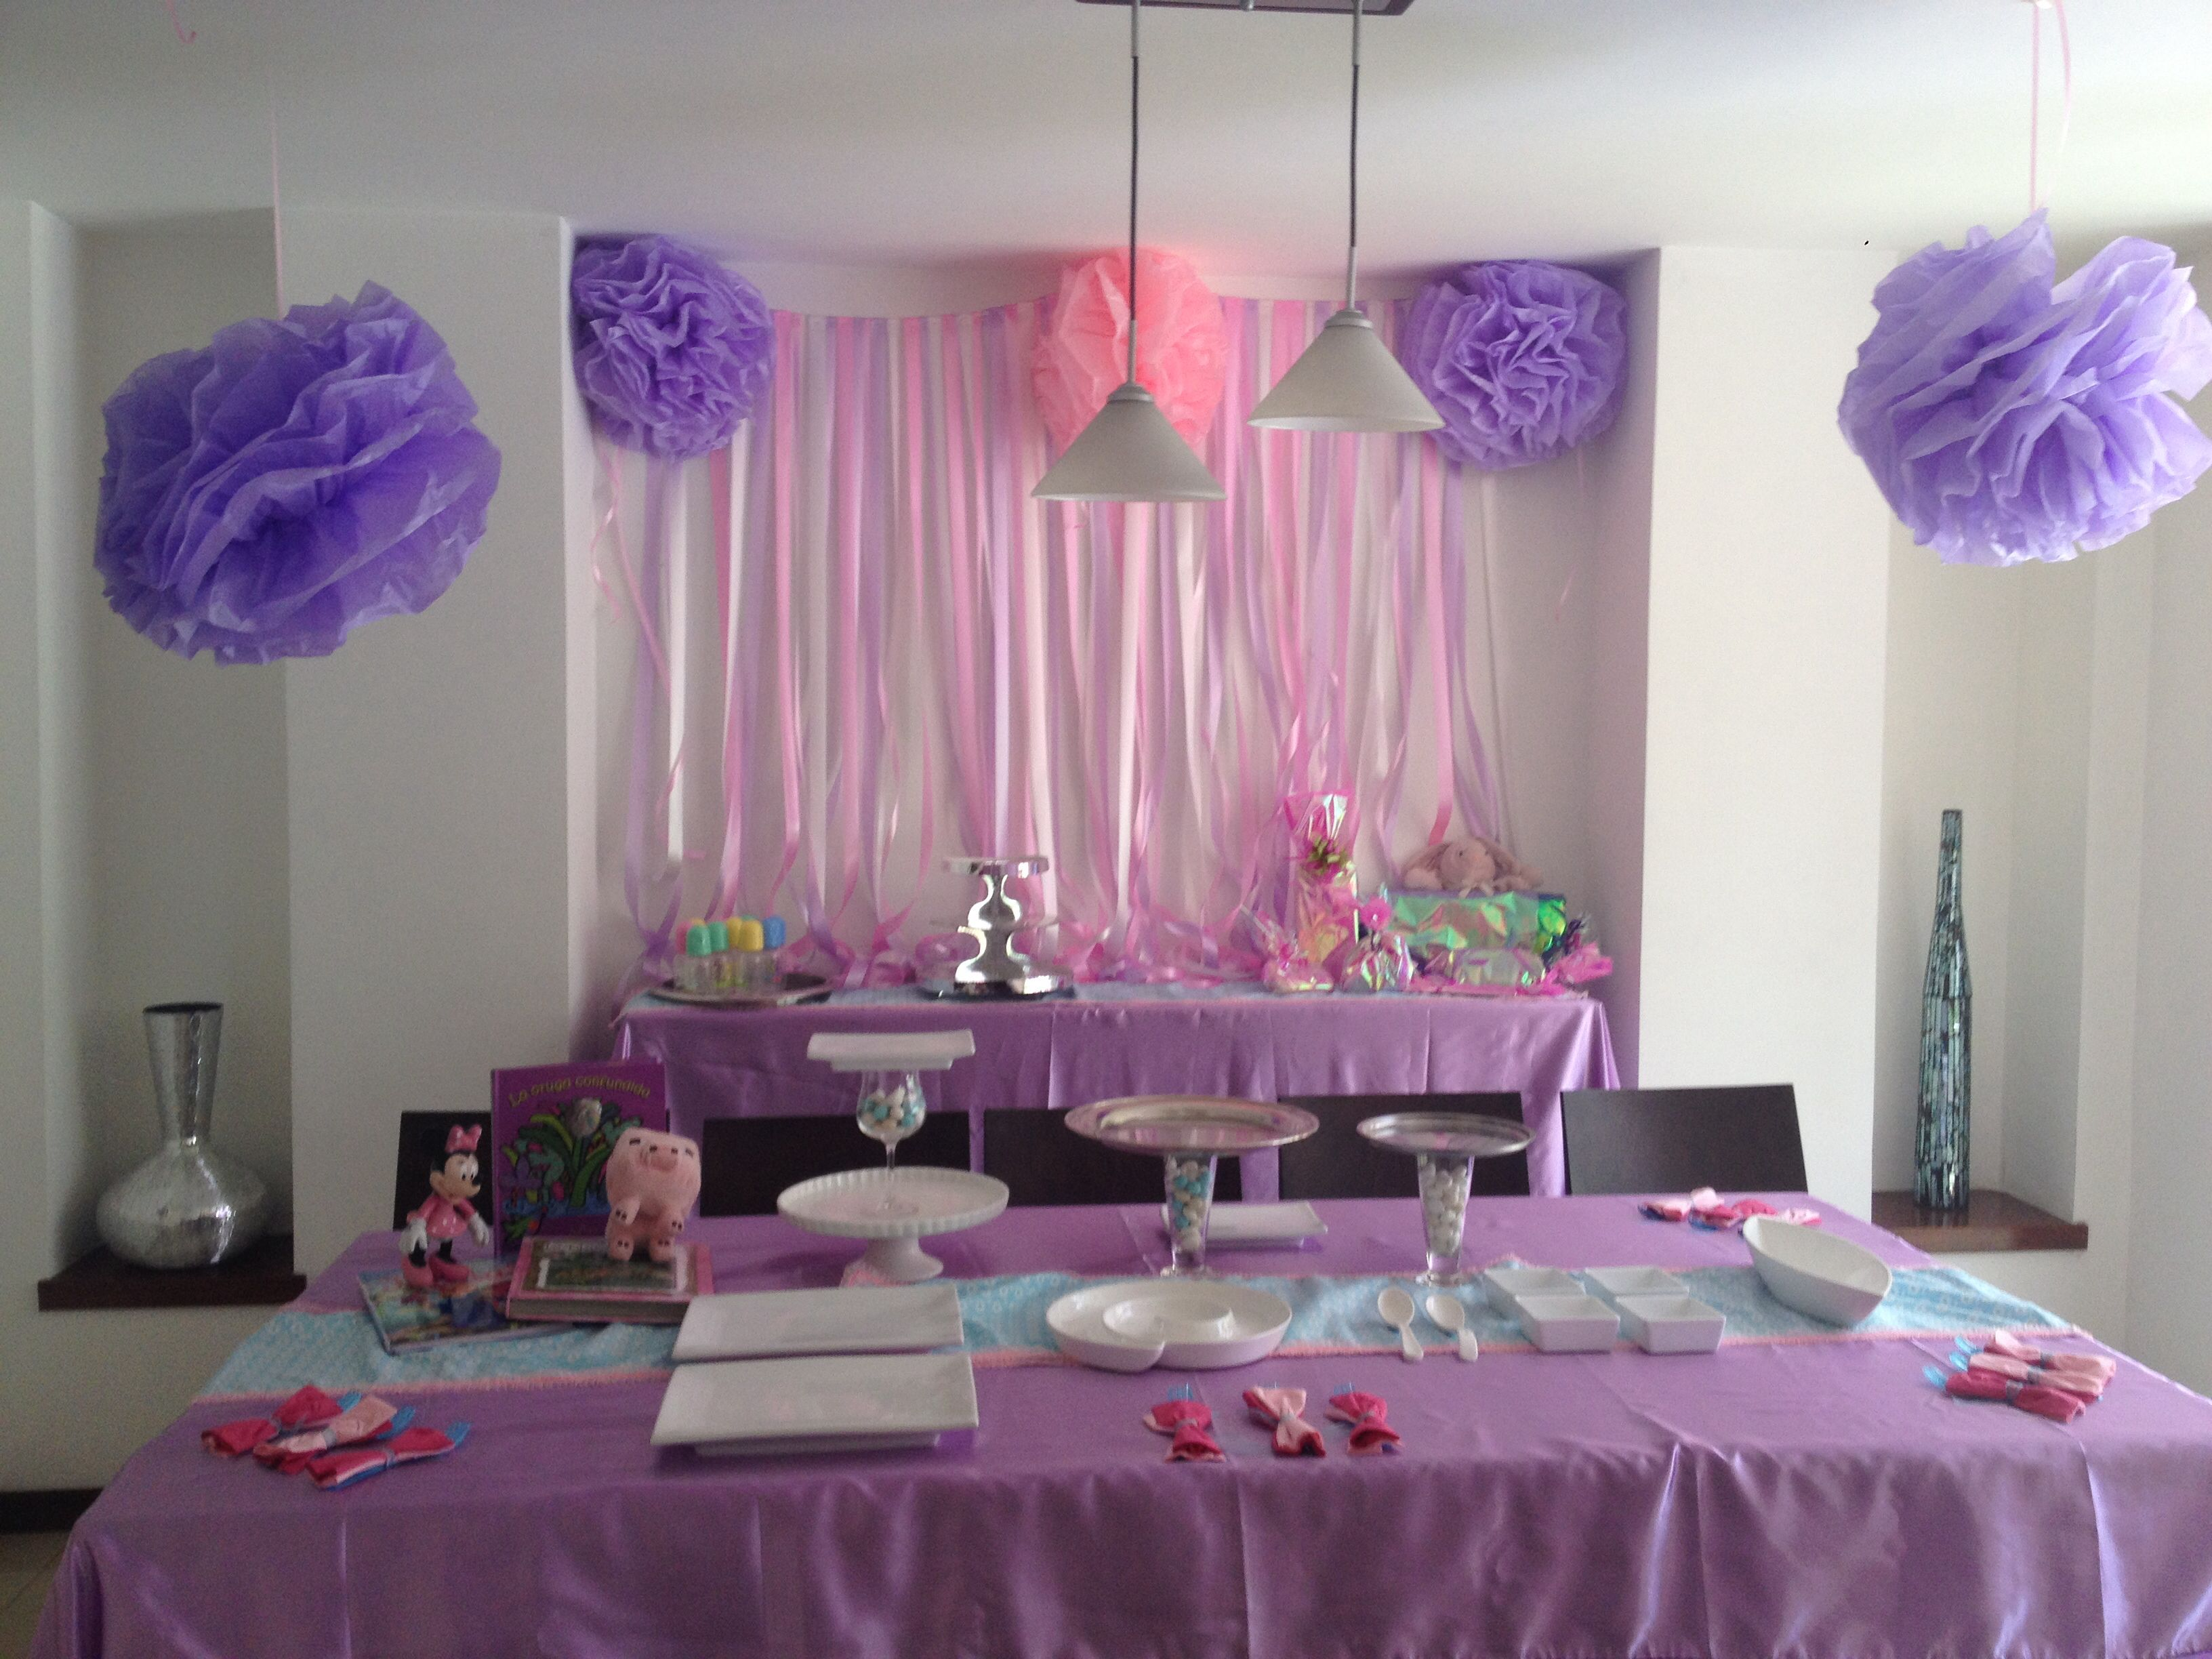 Decoraci n para baby shower muy f cil de hacer fiestas - Baby shower decoracion ...